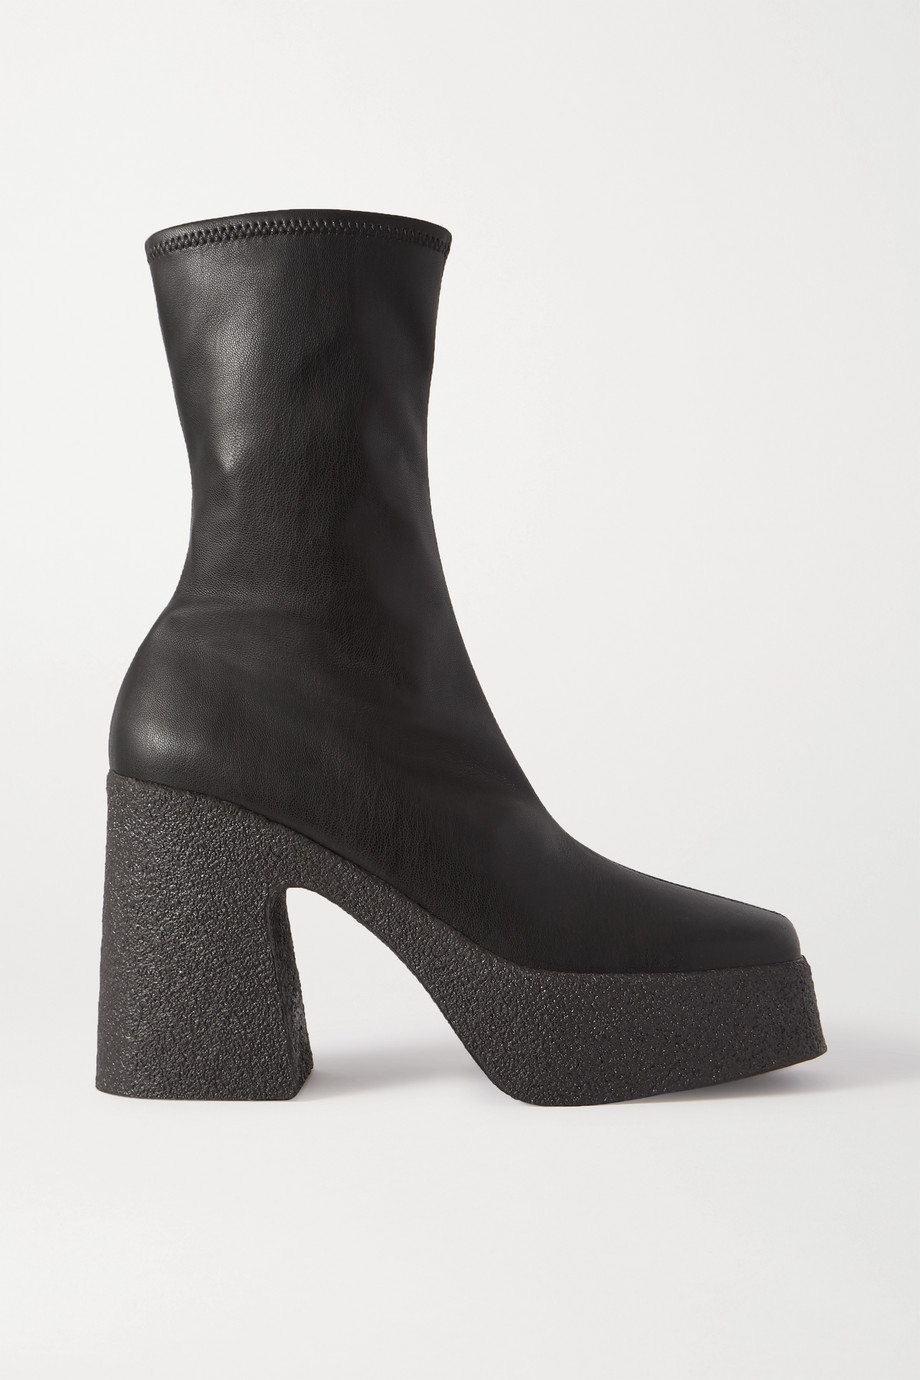 Stella McCartney Faux leather platform ankle boots